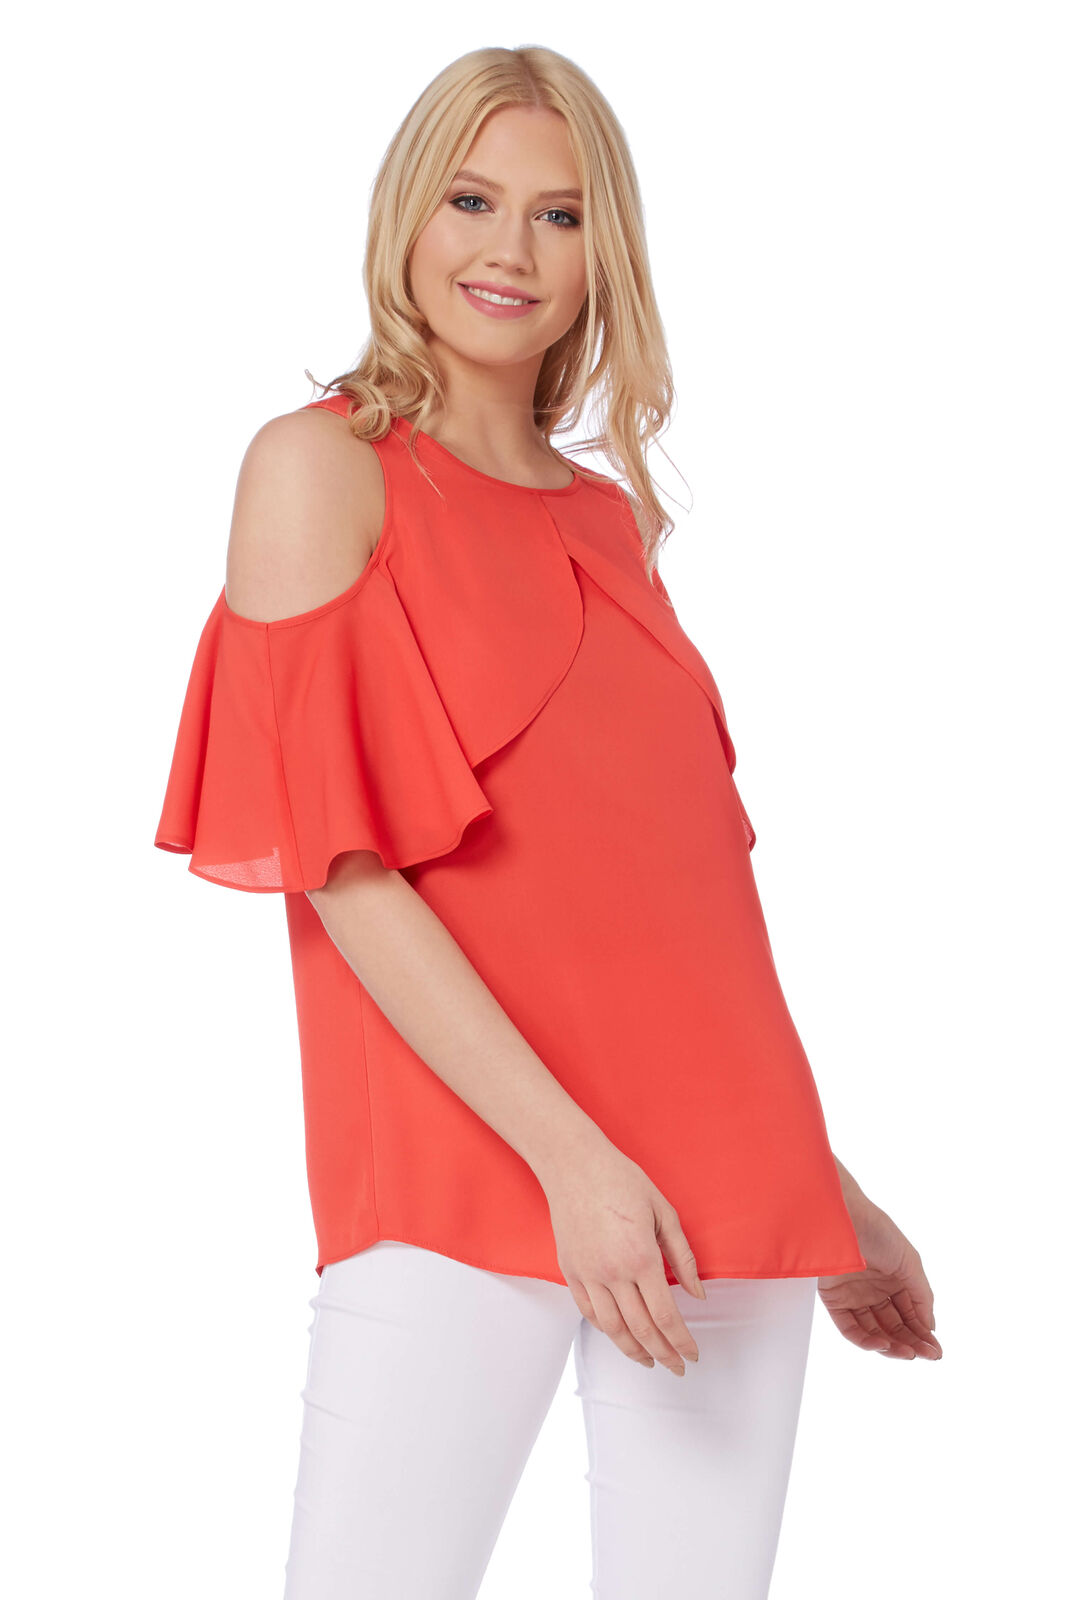 Roman Originals Women's Red Frill Sleeve Cold Shoulder Top Sizes 10-20